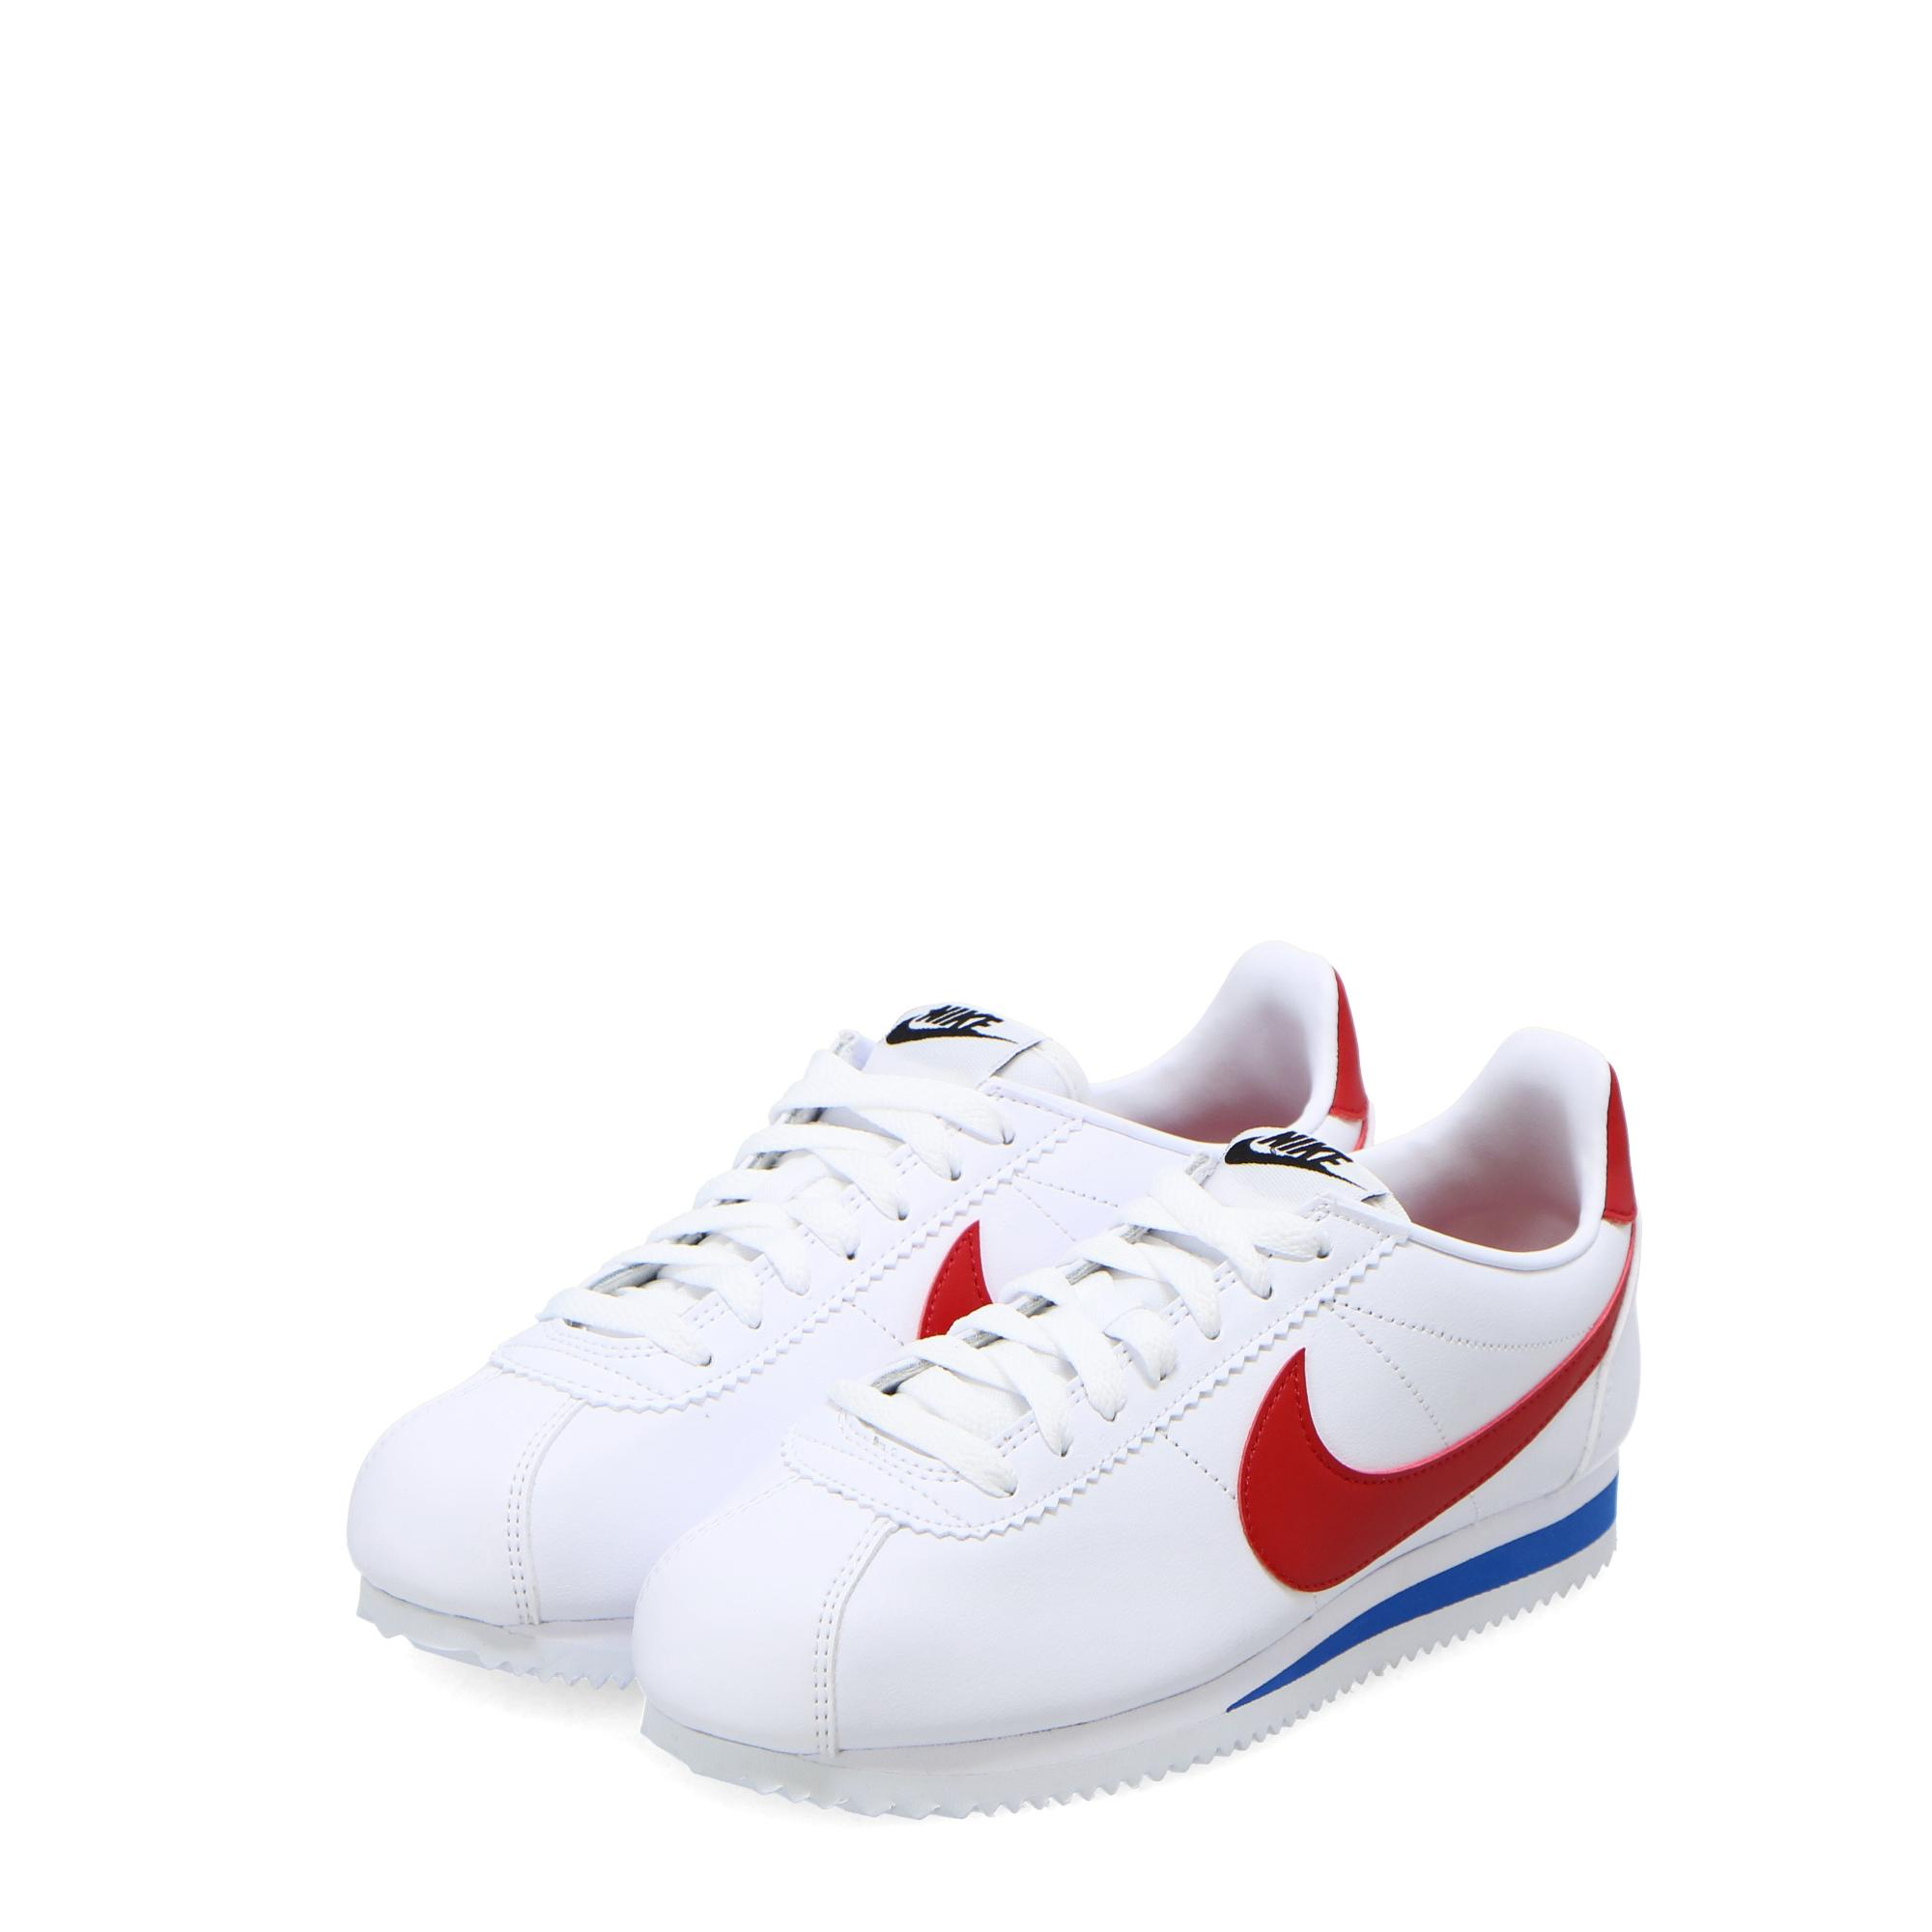 new concept 0cf50 5dcd9 NIKE CLASSIC CORTEZ LEATHER